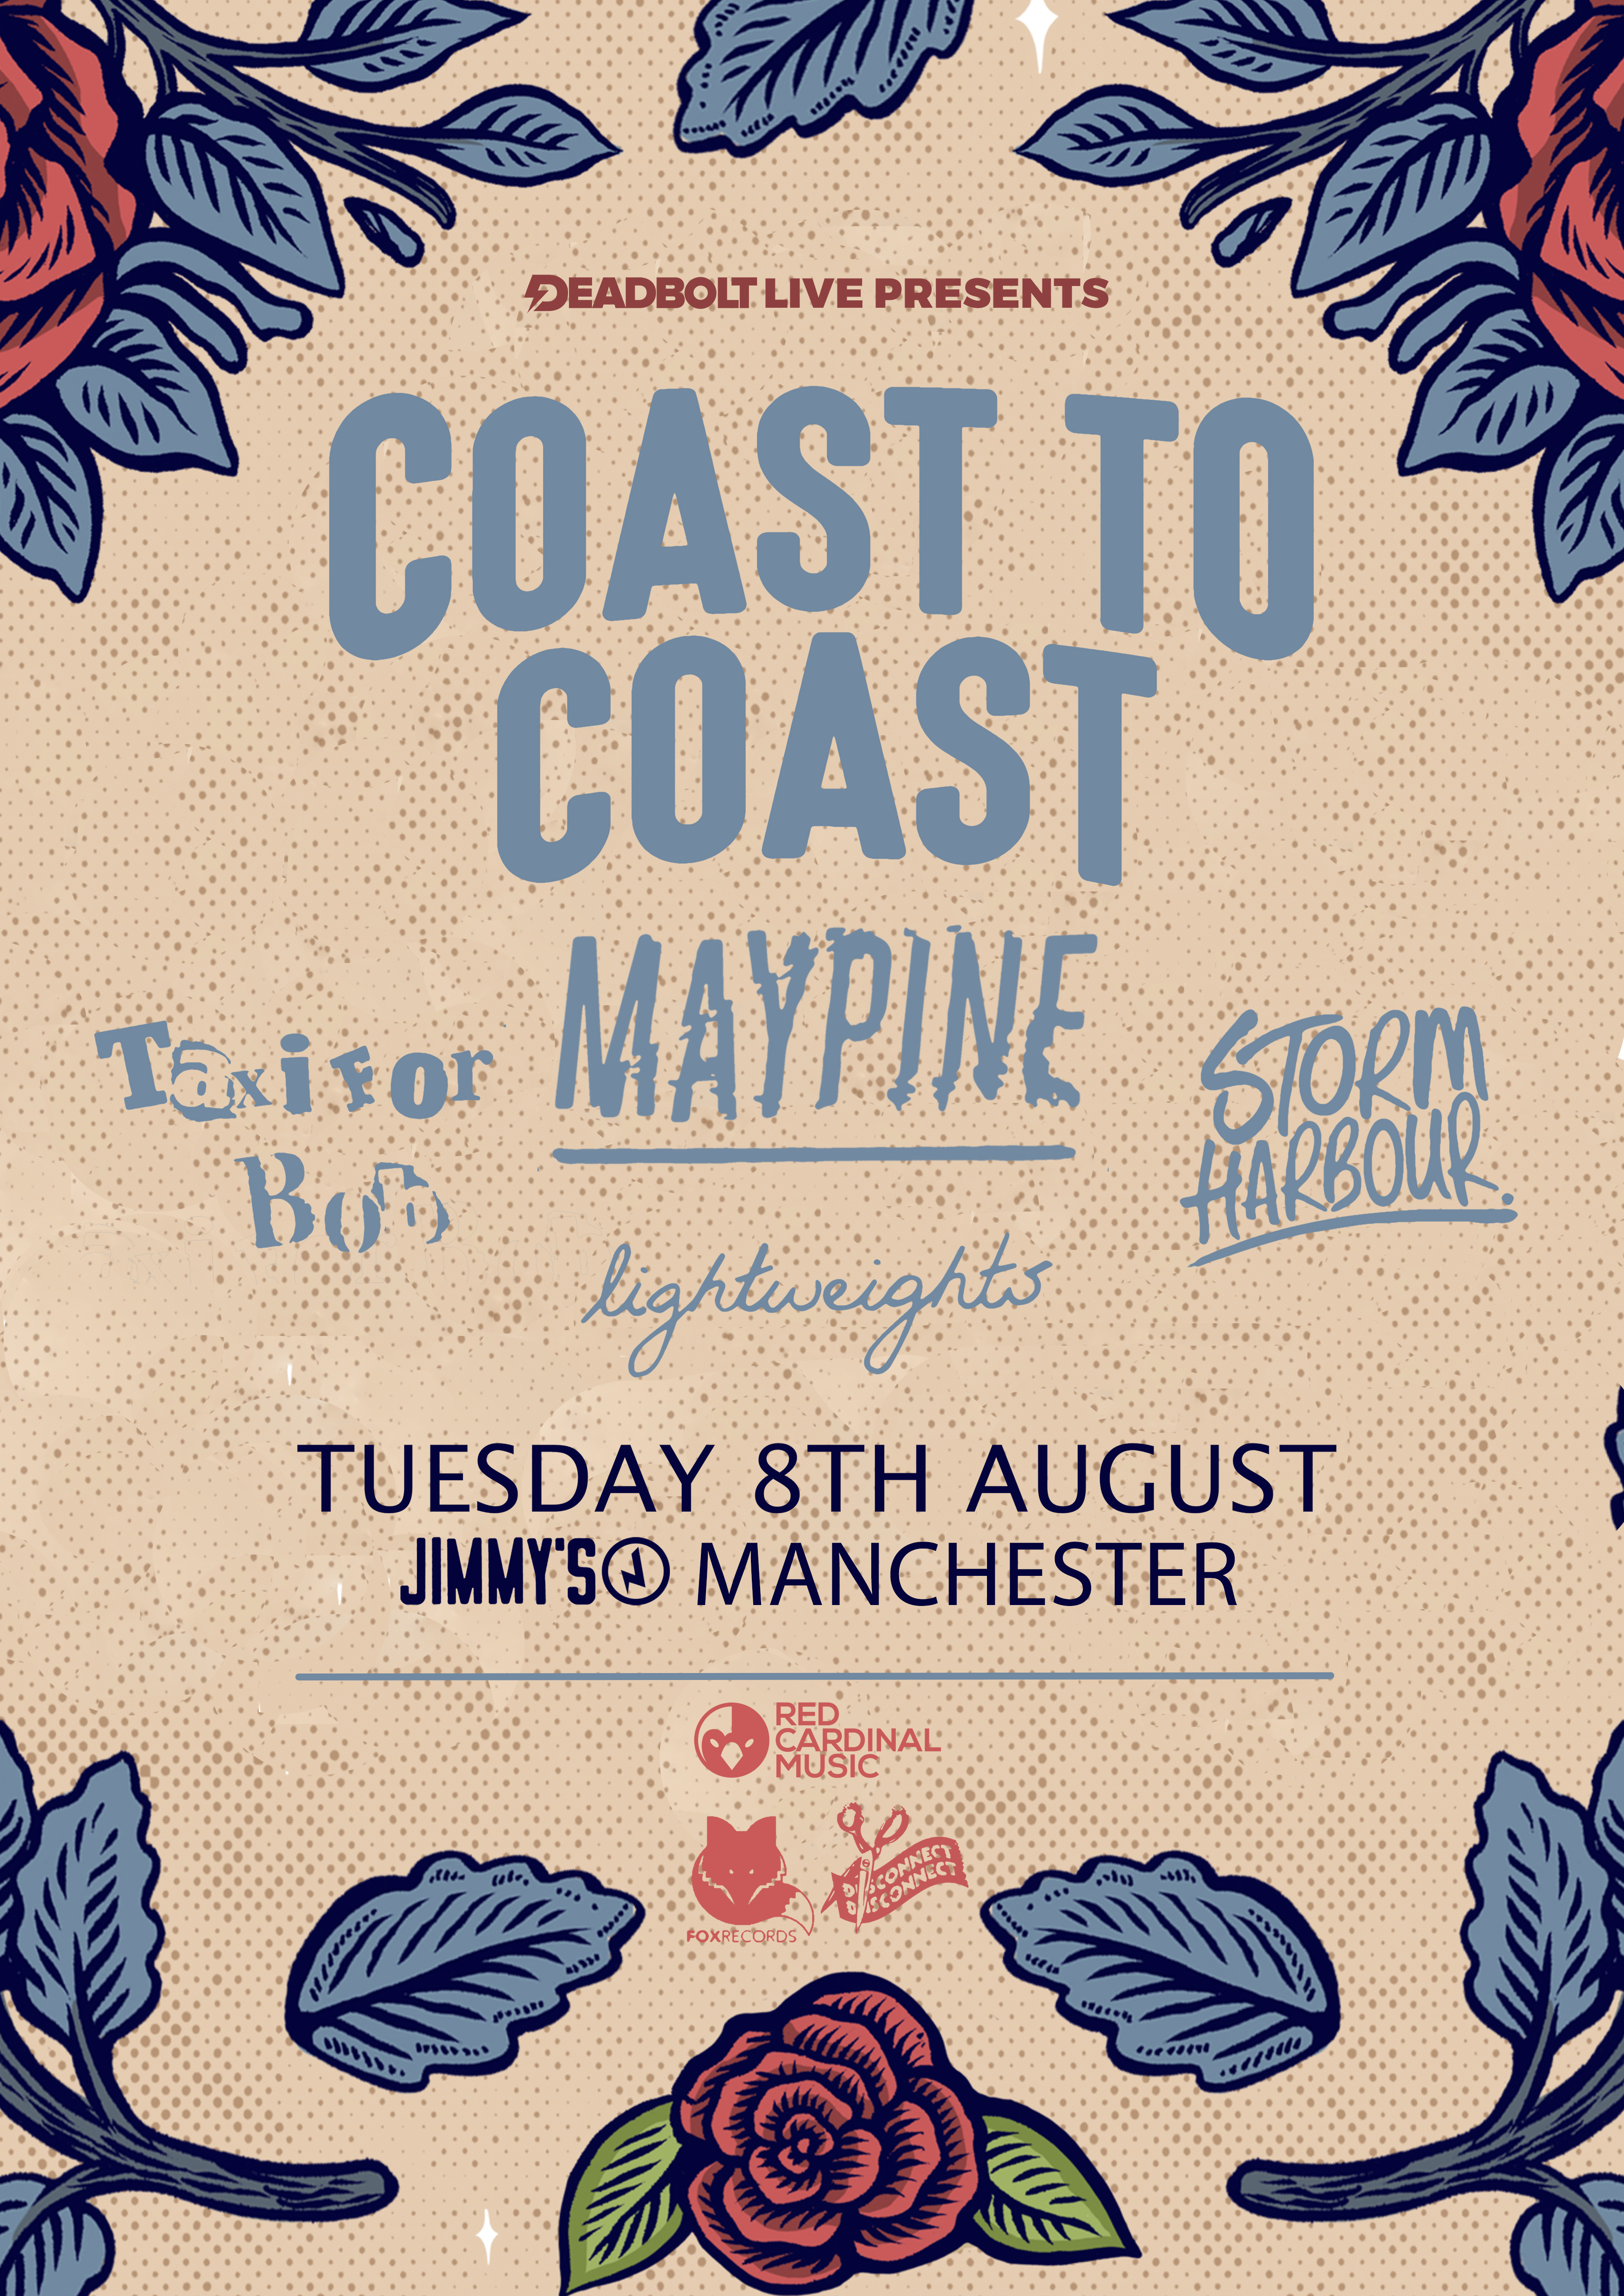 Deadbolt Live: Coast to Coast, Maypine, Taxi For Bob, Storm Harbour, Lightweights - UK Pop Punk - Jimmy's Manchester - Red Cardinal Music